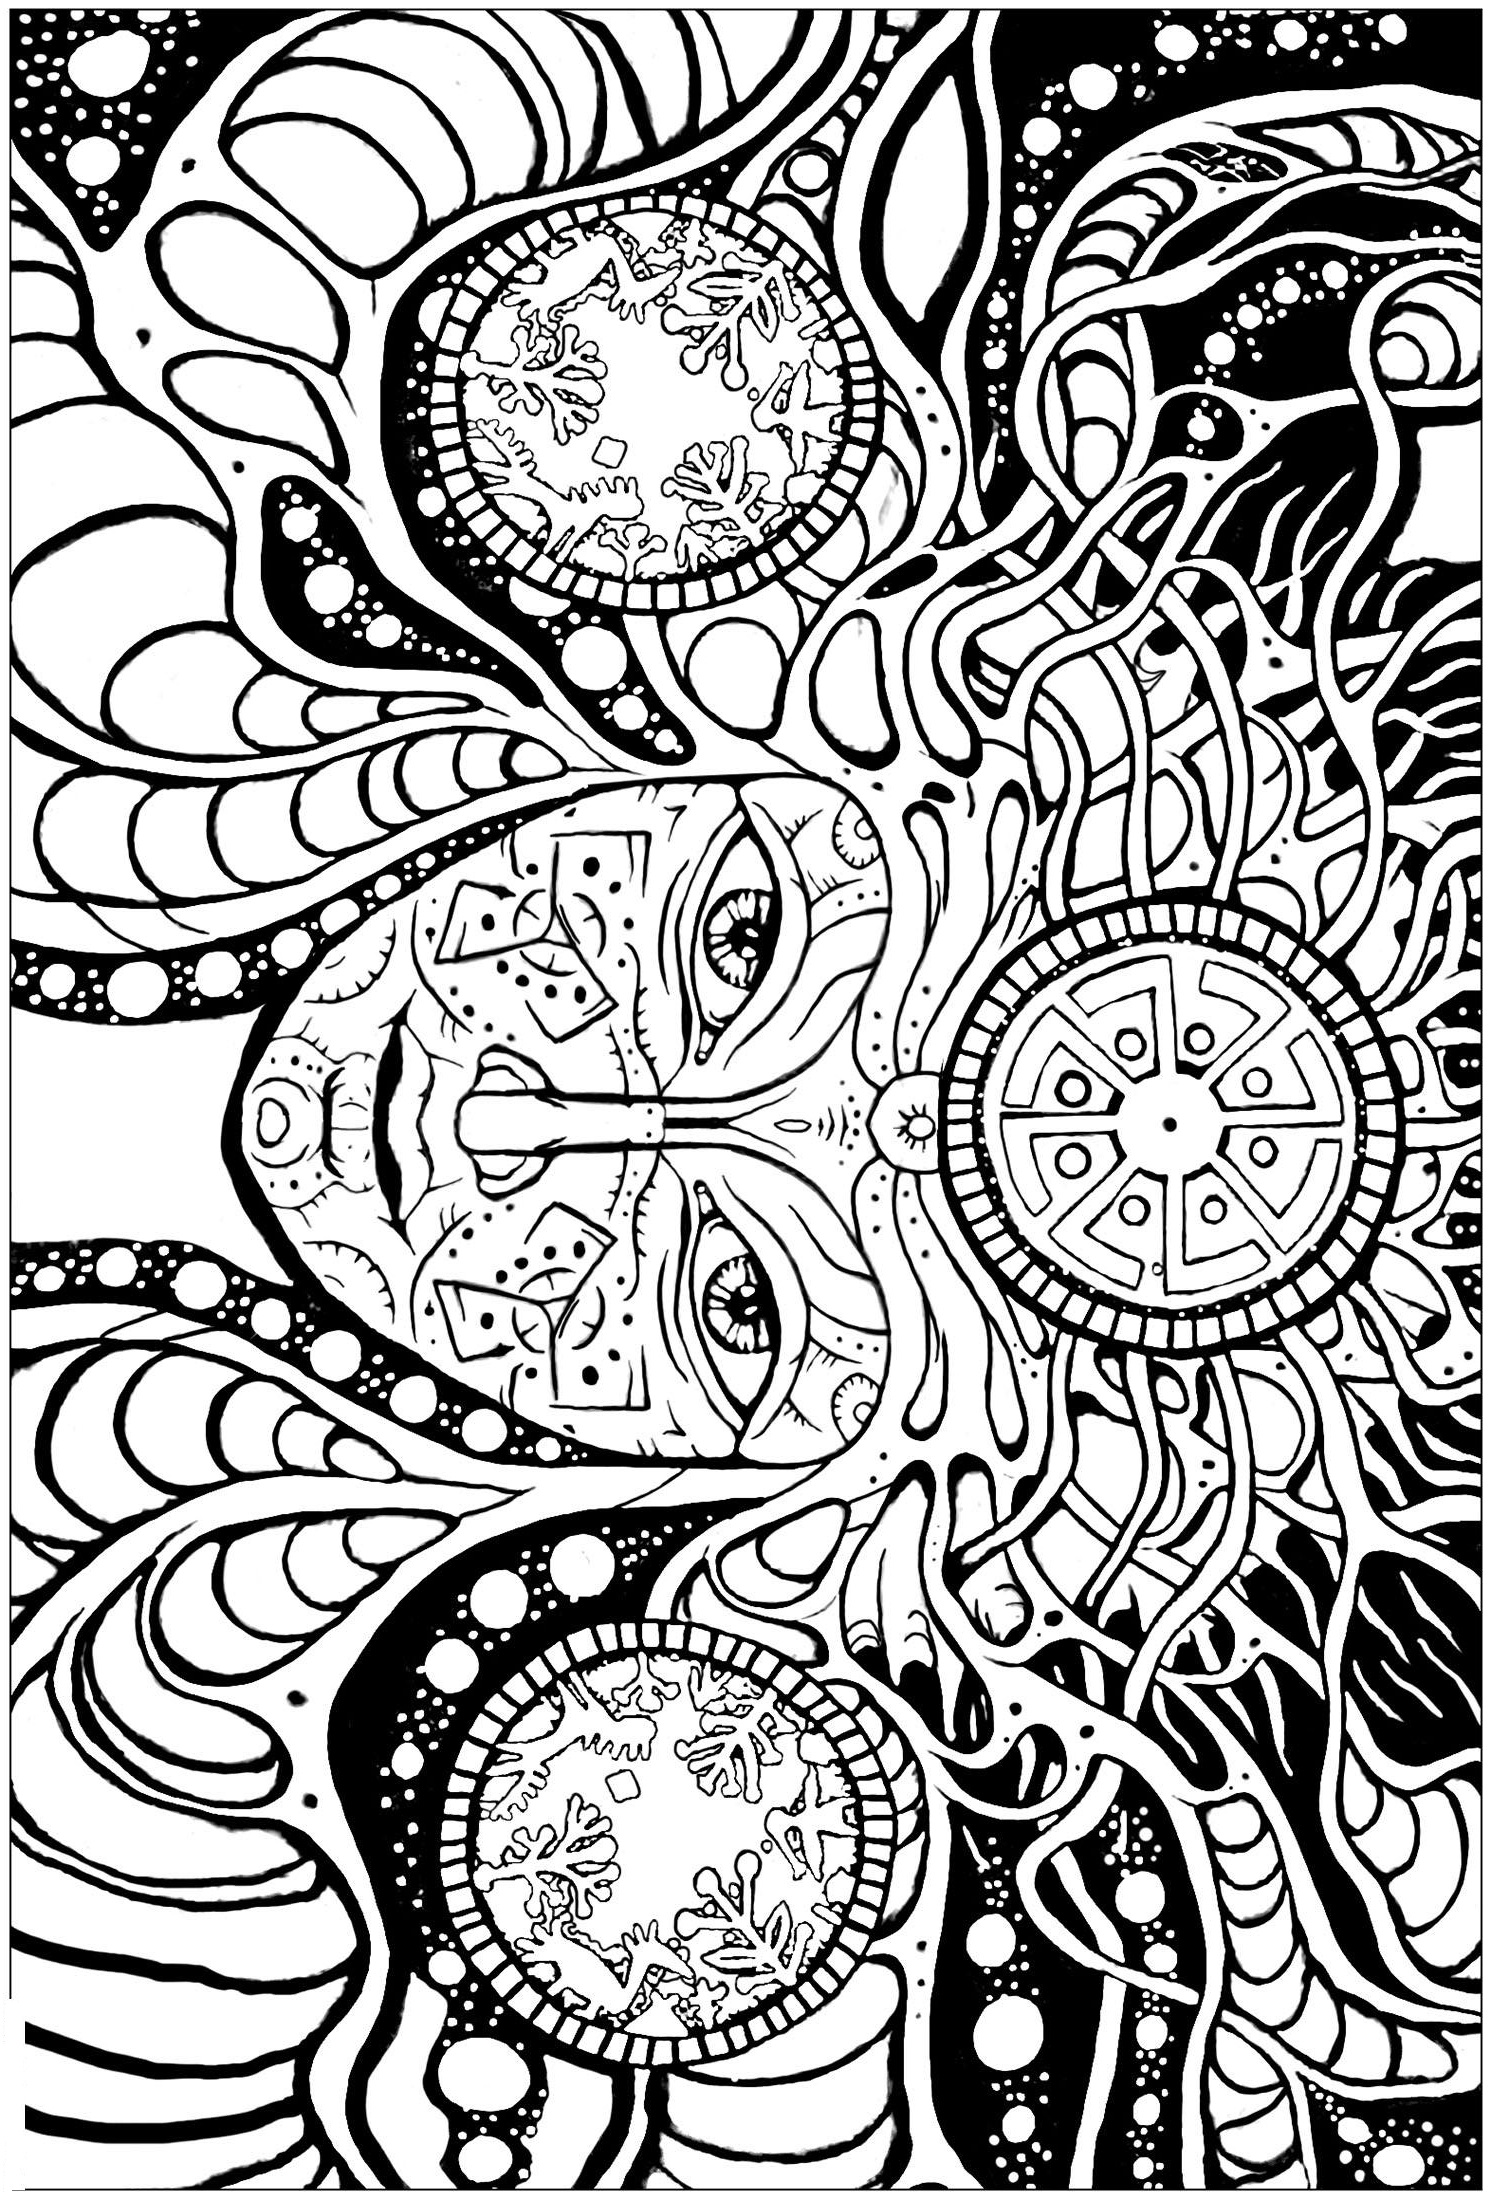 Rosette Intricate Patterns Coloring Page Free Coloring